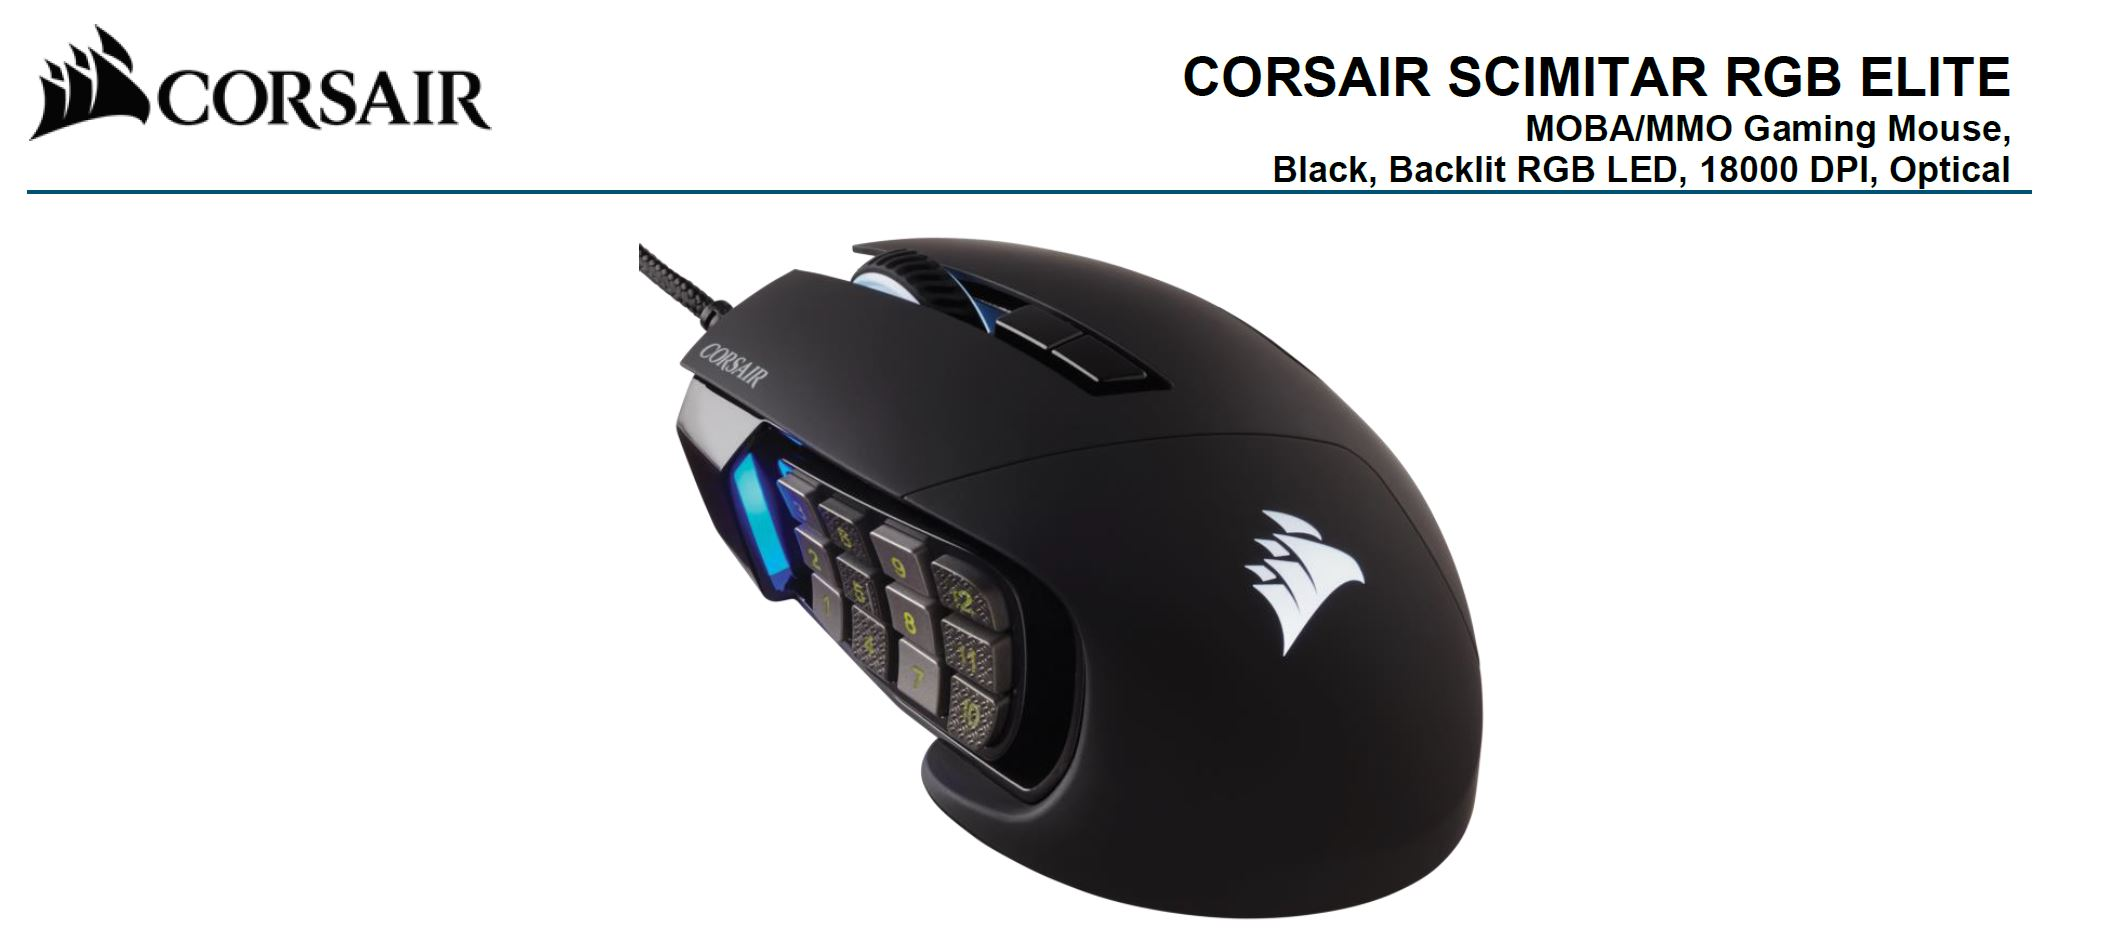 Corsair SCIMITAR RGB ELITE Black Gaming Mice, 17 programmable buttons, 18,000 DPI